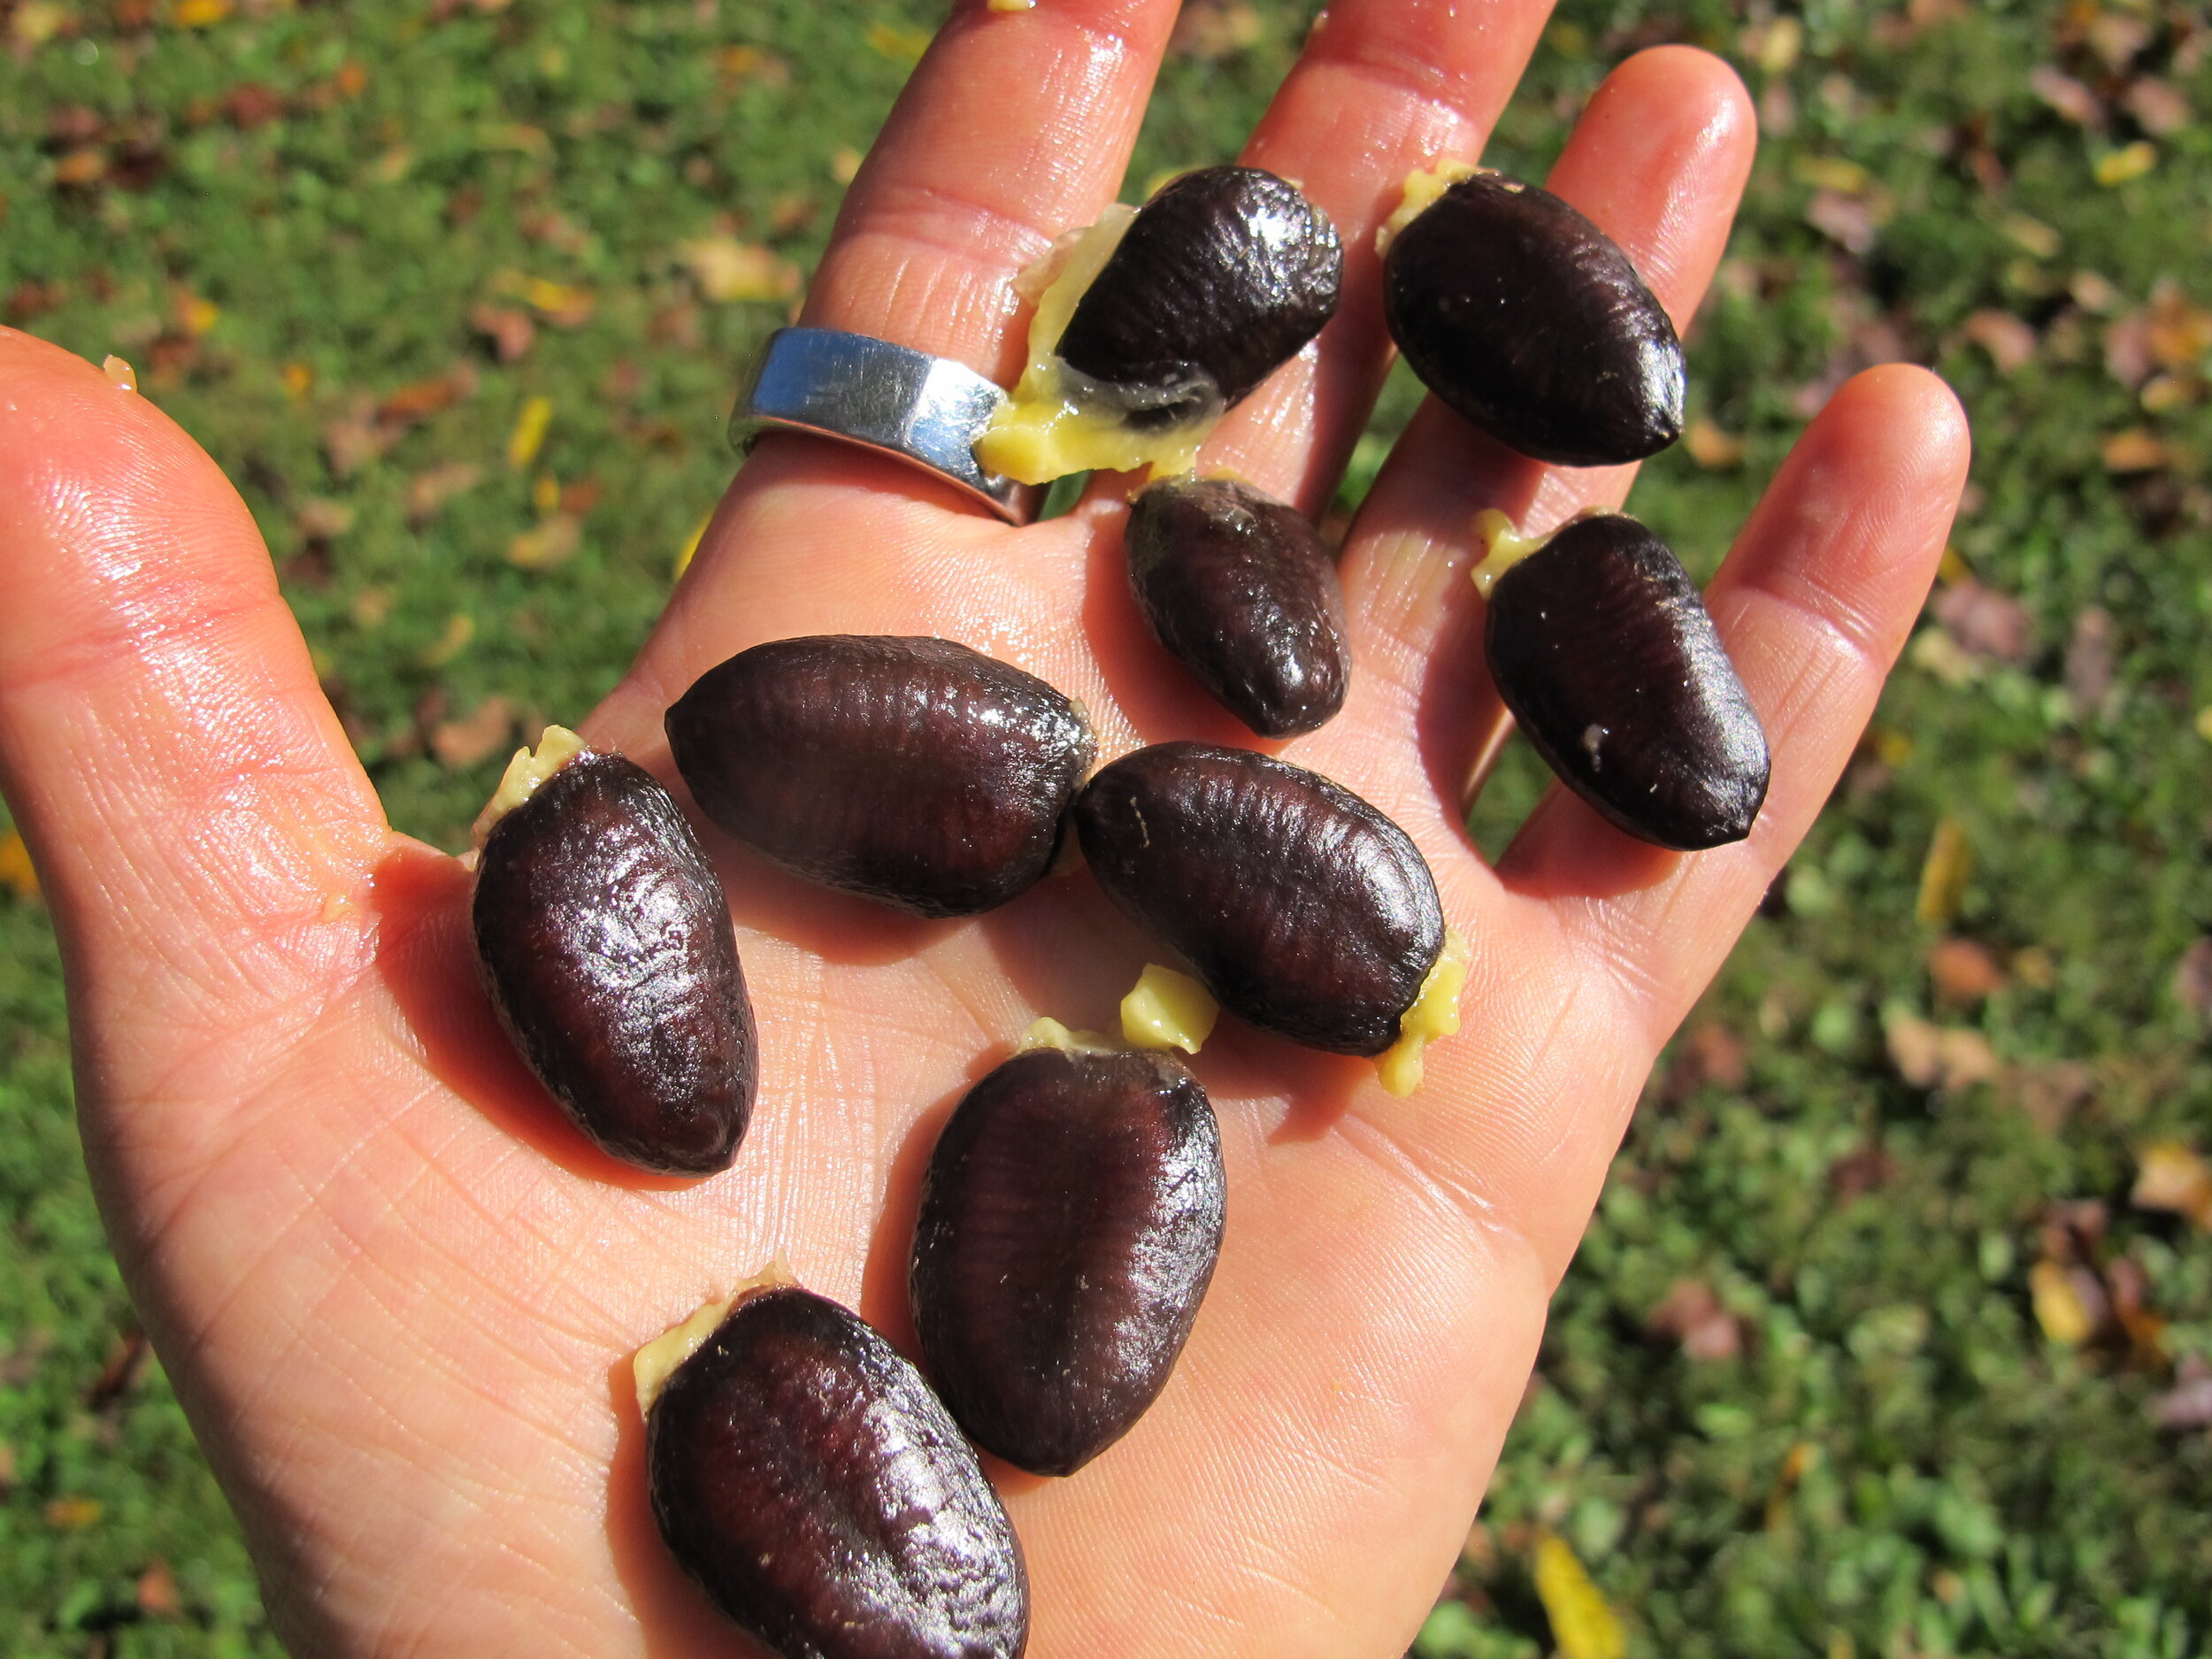 Large black seeds just removed from pawpaw fruit can be planted right away. Don' leave out at room temp for long (plant within a couple of days). Germination decreases very quickly if seeds dry out. See below for more info.